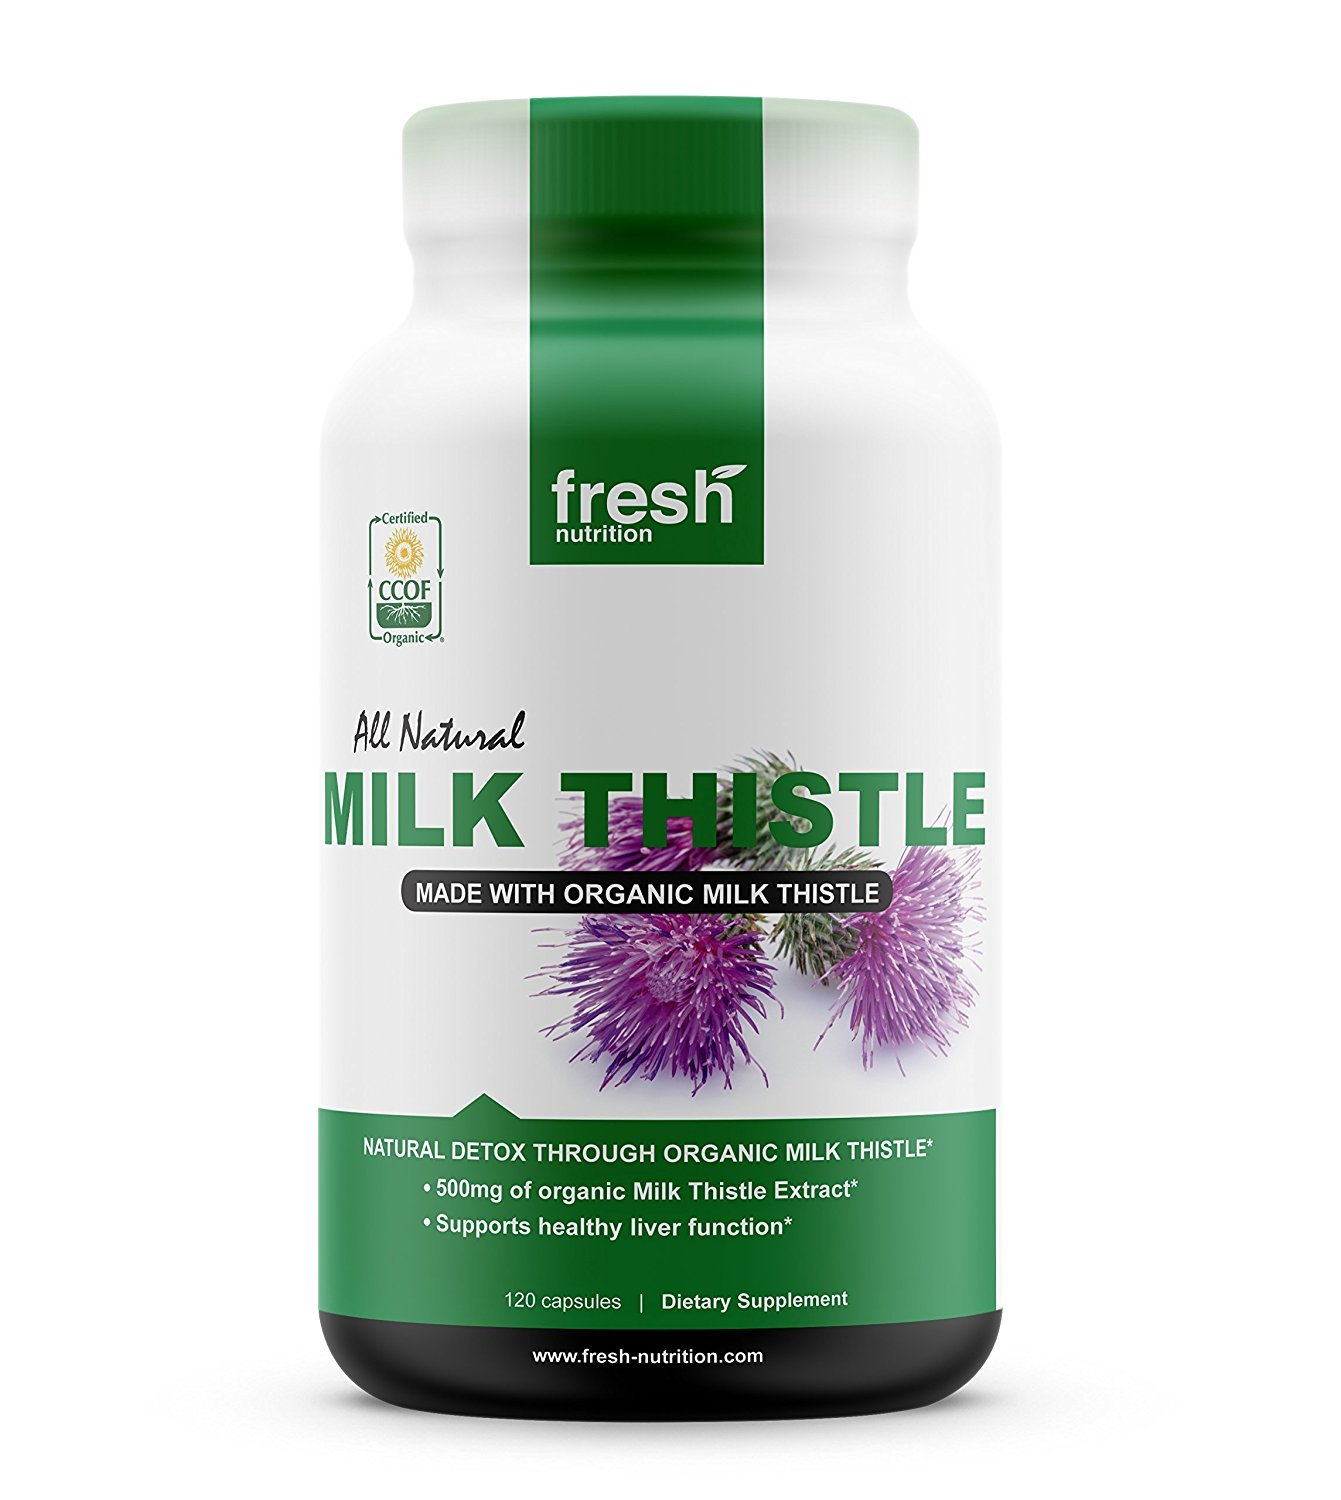 Milk Thistle - 120 Servings of 2000mg - New Strongest at Special Launch Price – 4 Month Supply – CCOF Organic - Sylimarin Thisilyn Seed Standardized Extract 4:1 Capsules - Best for Liver Cleanse - USA